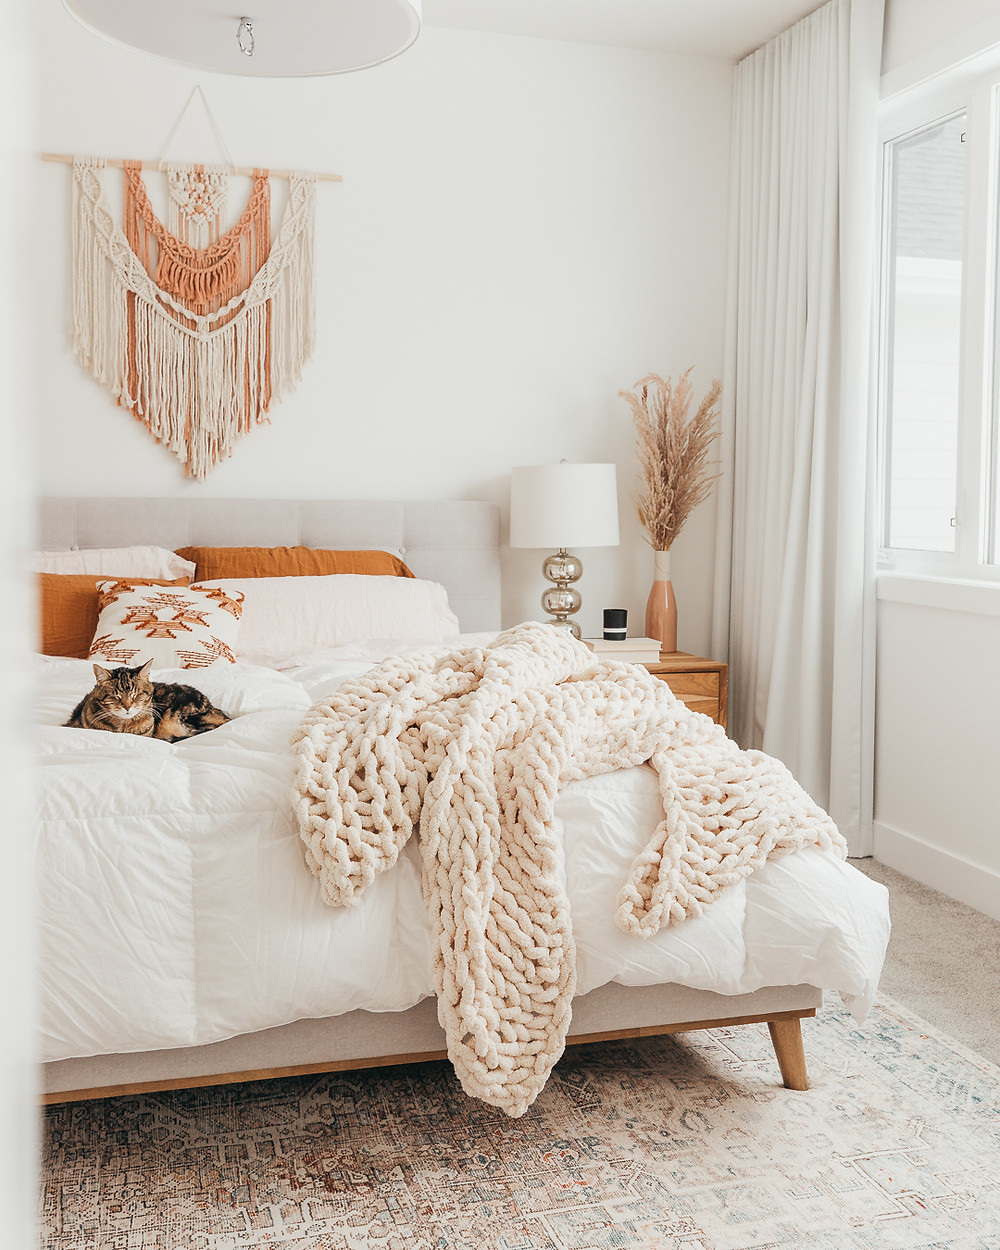 Cream and blush macramé wall hanging over grey fabric headboard rust and white sheets with chunky cream knit throw on bed sleeping cat mercury glass lamp on wood side table with pampas grass in vase natural light white drapes on window area rug under bed